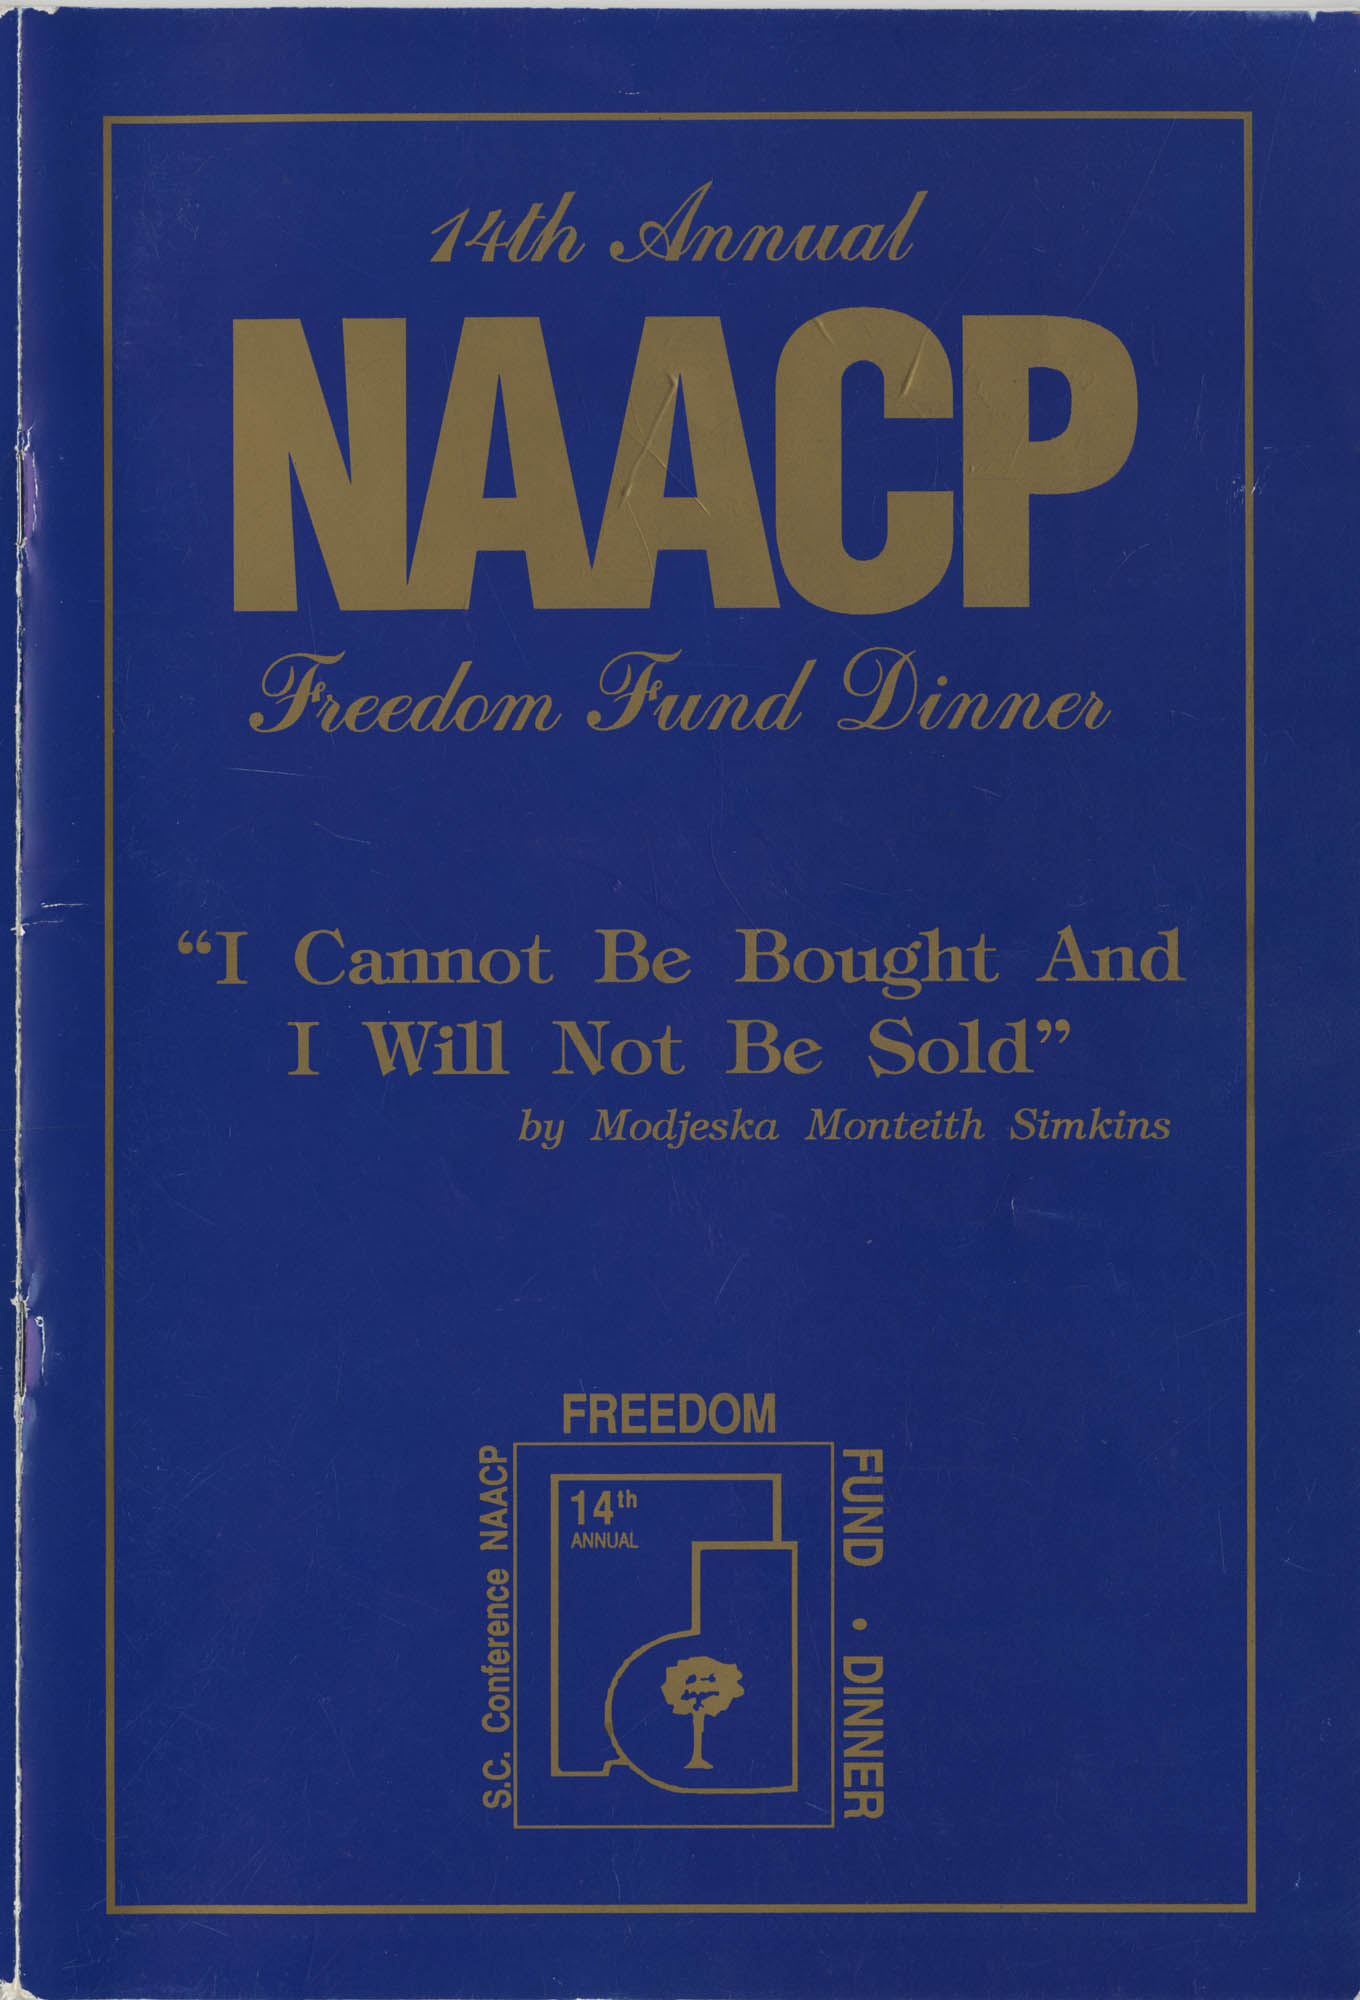 14th Annual NAACP Freedom Fund Dinner, Front Cover Exterior